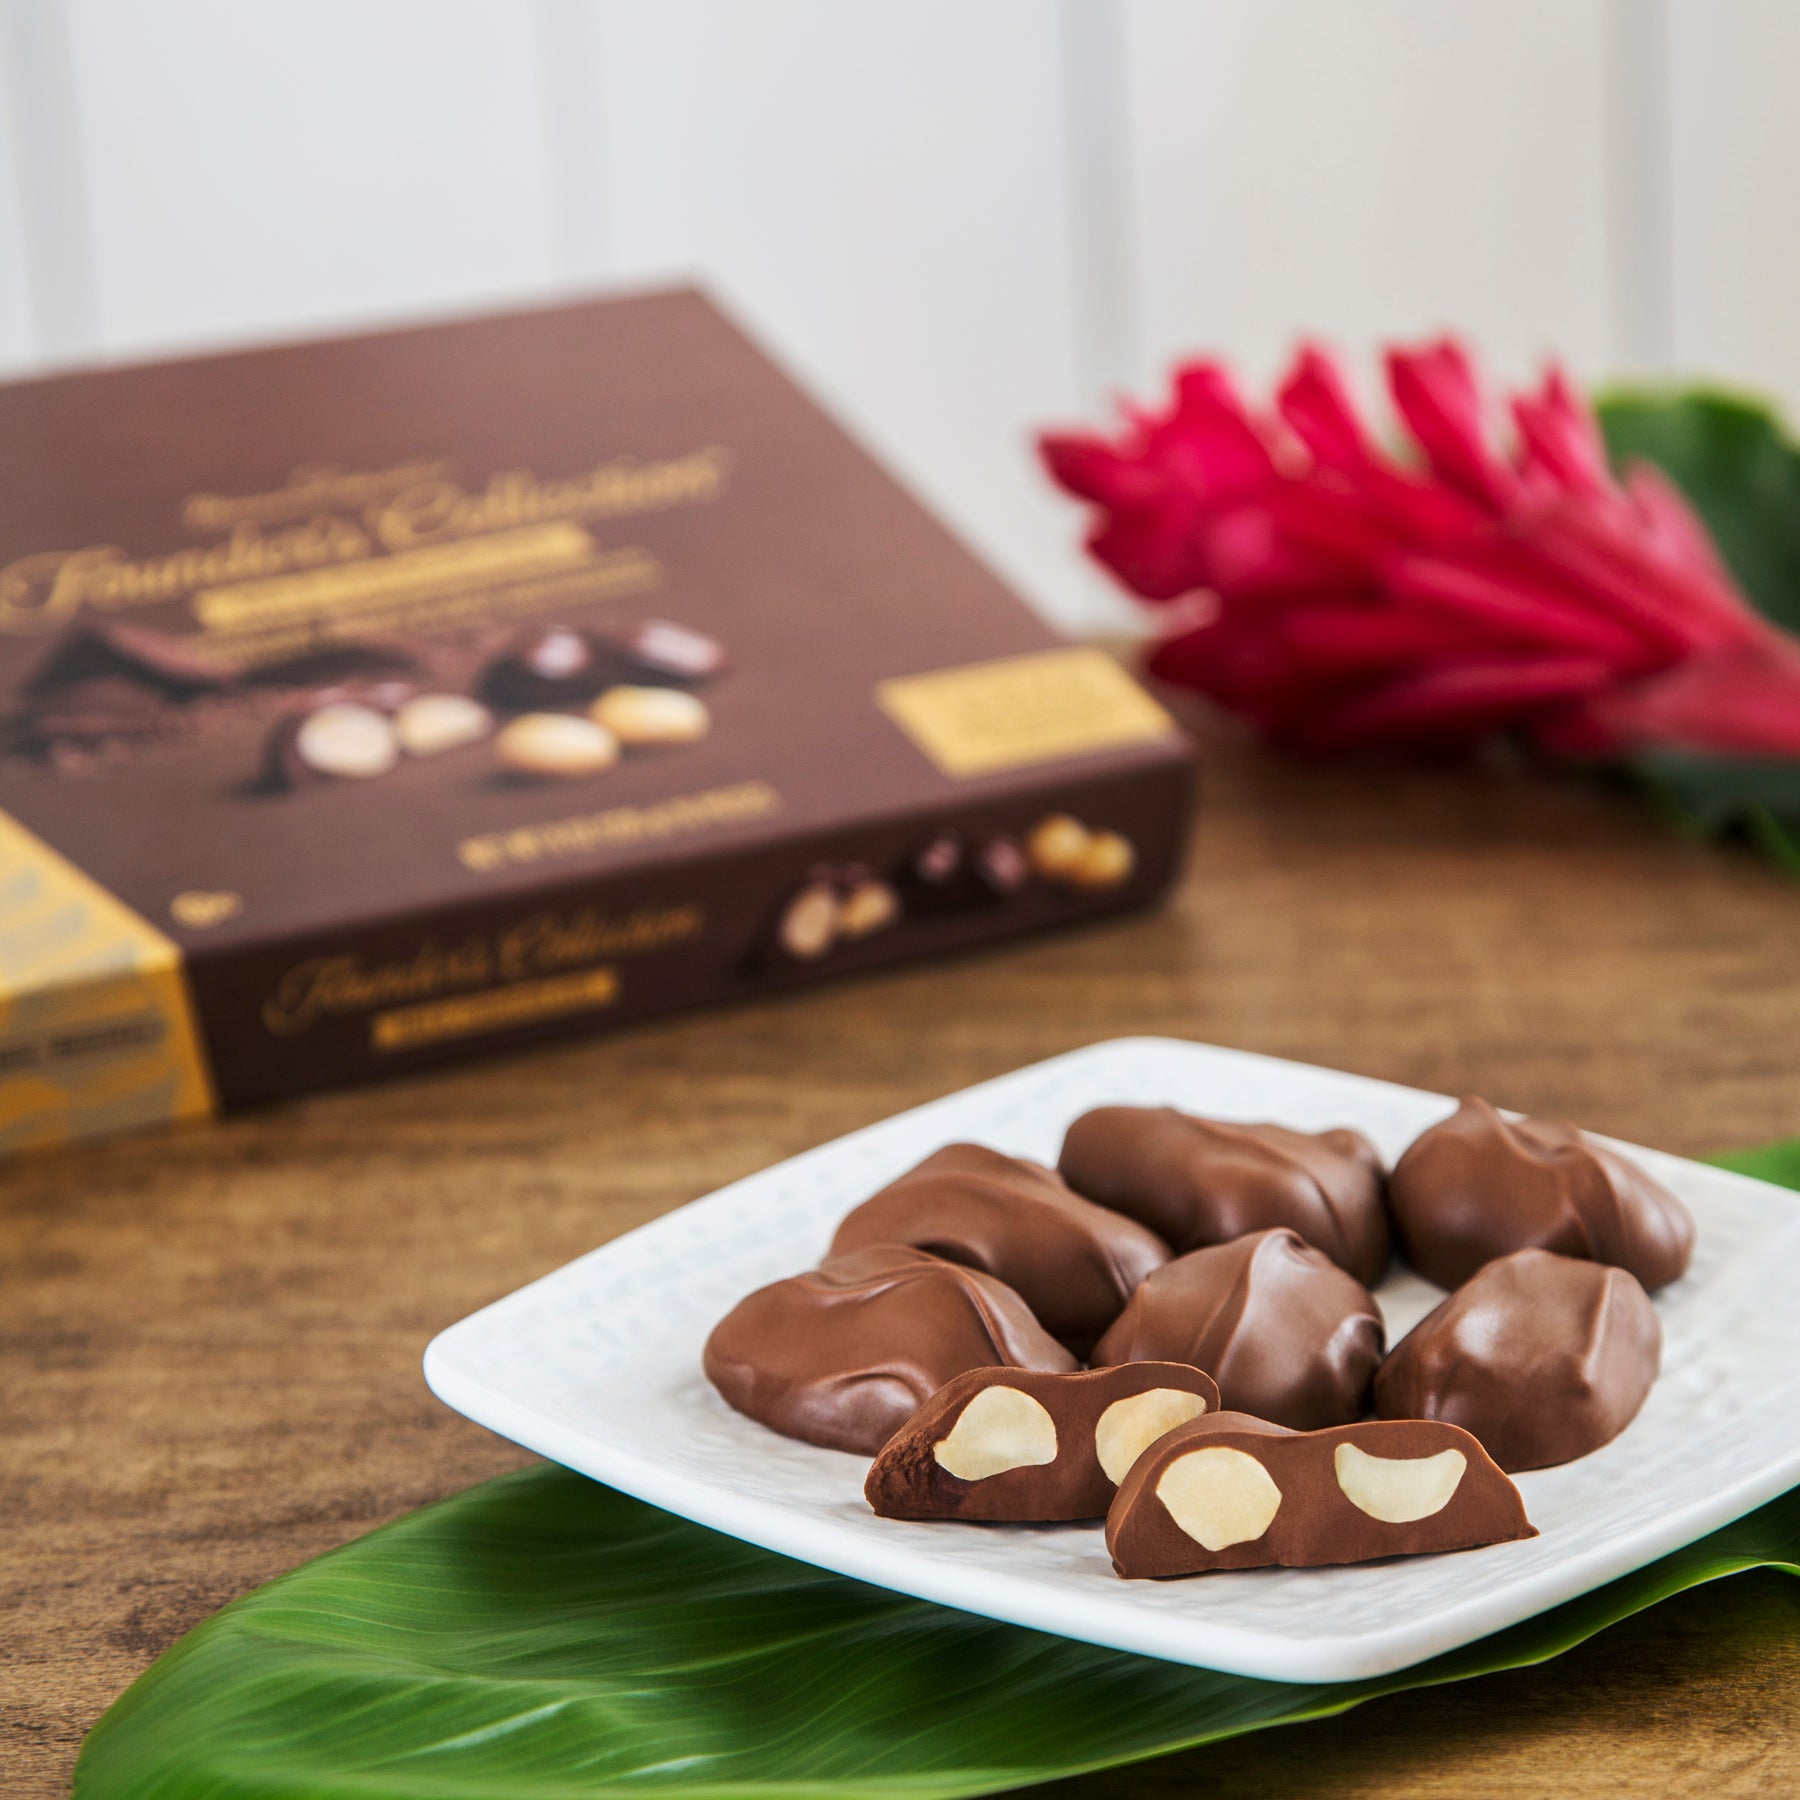 Founder's Collection milk chocolate covered macadamia nuts